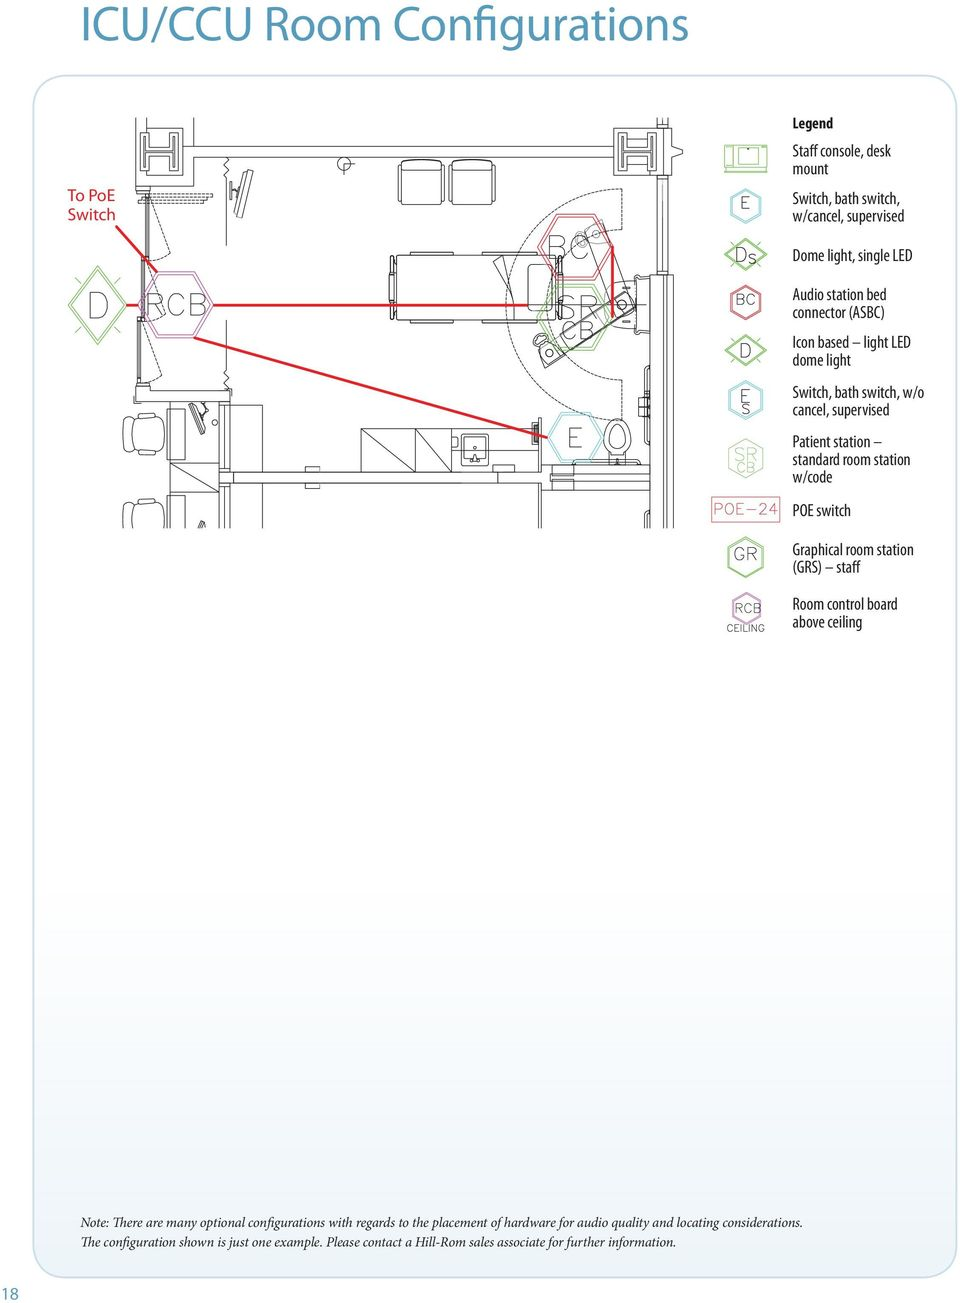 Navicare Nurse Call Healing Environments Design And Planning Guide Ge System Wiring Graphical Room Station Grs Staff Control Board Above Ceiling Note There Are